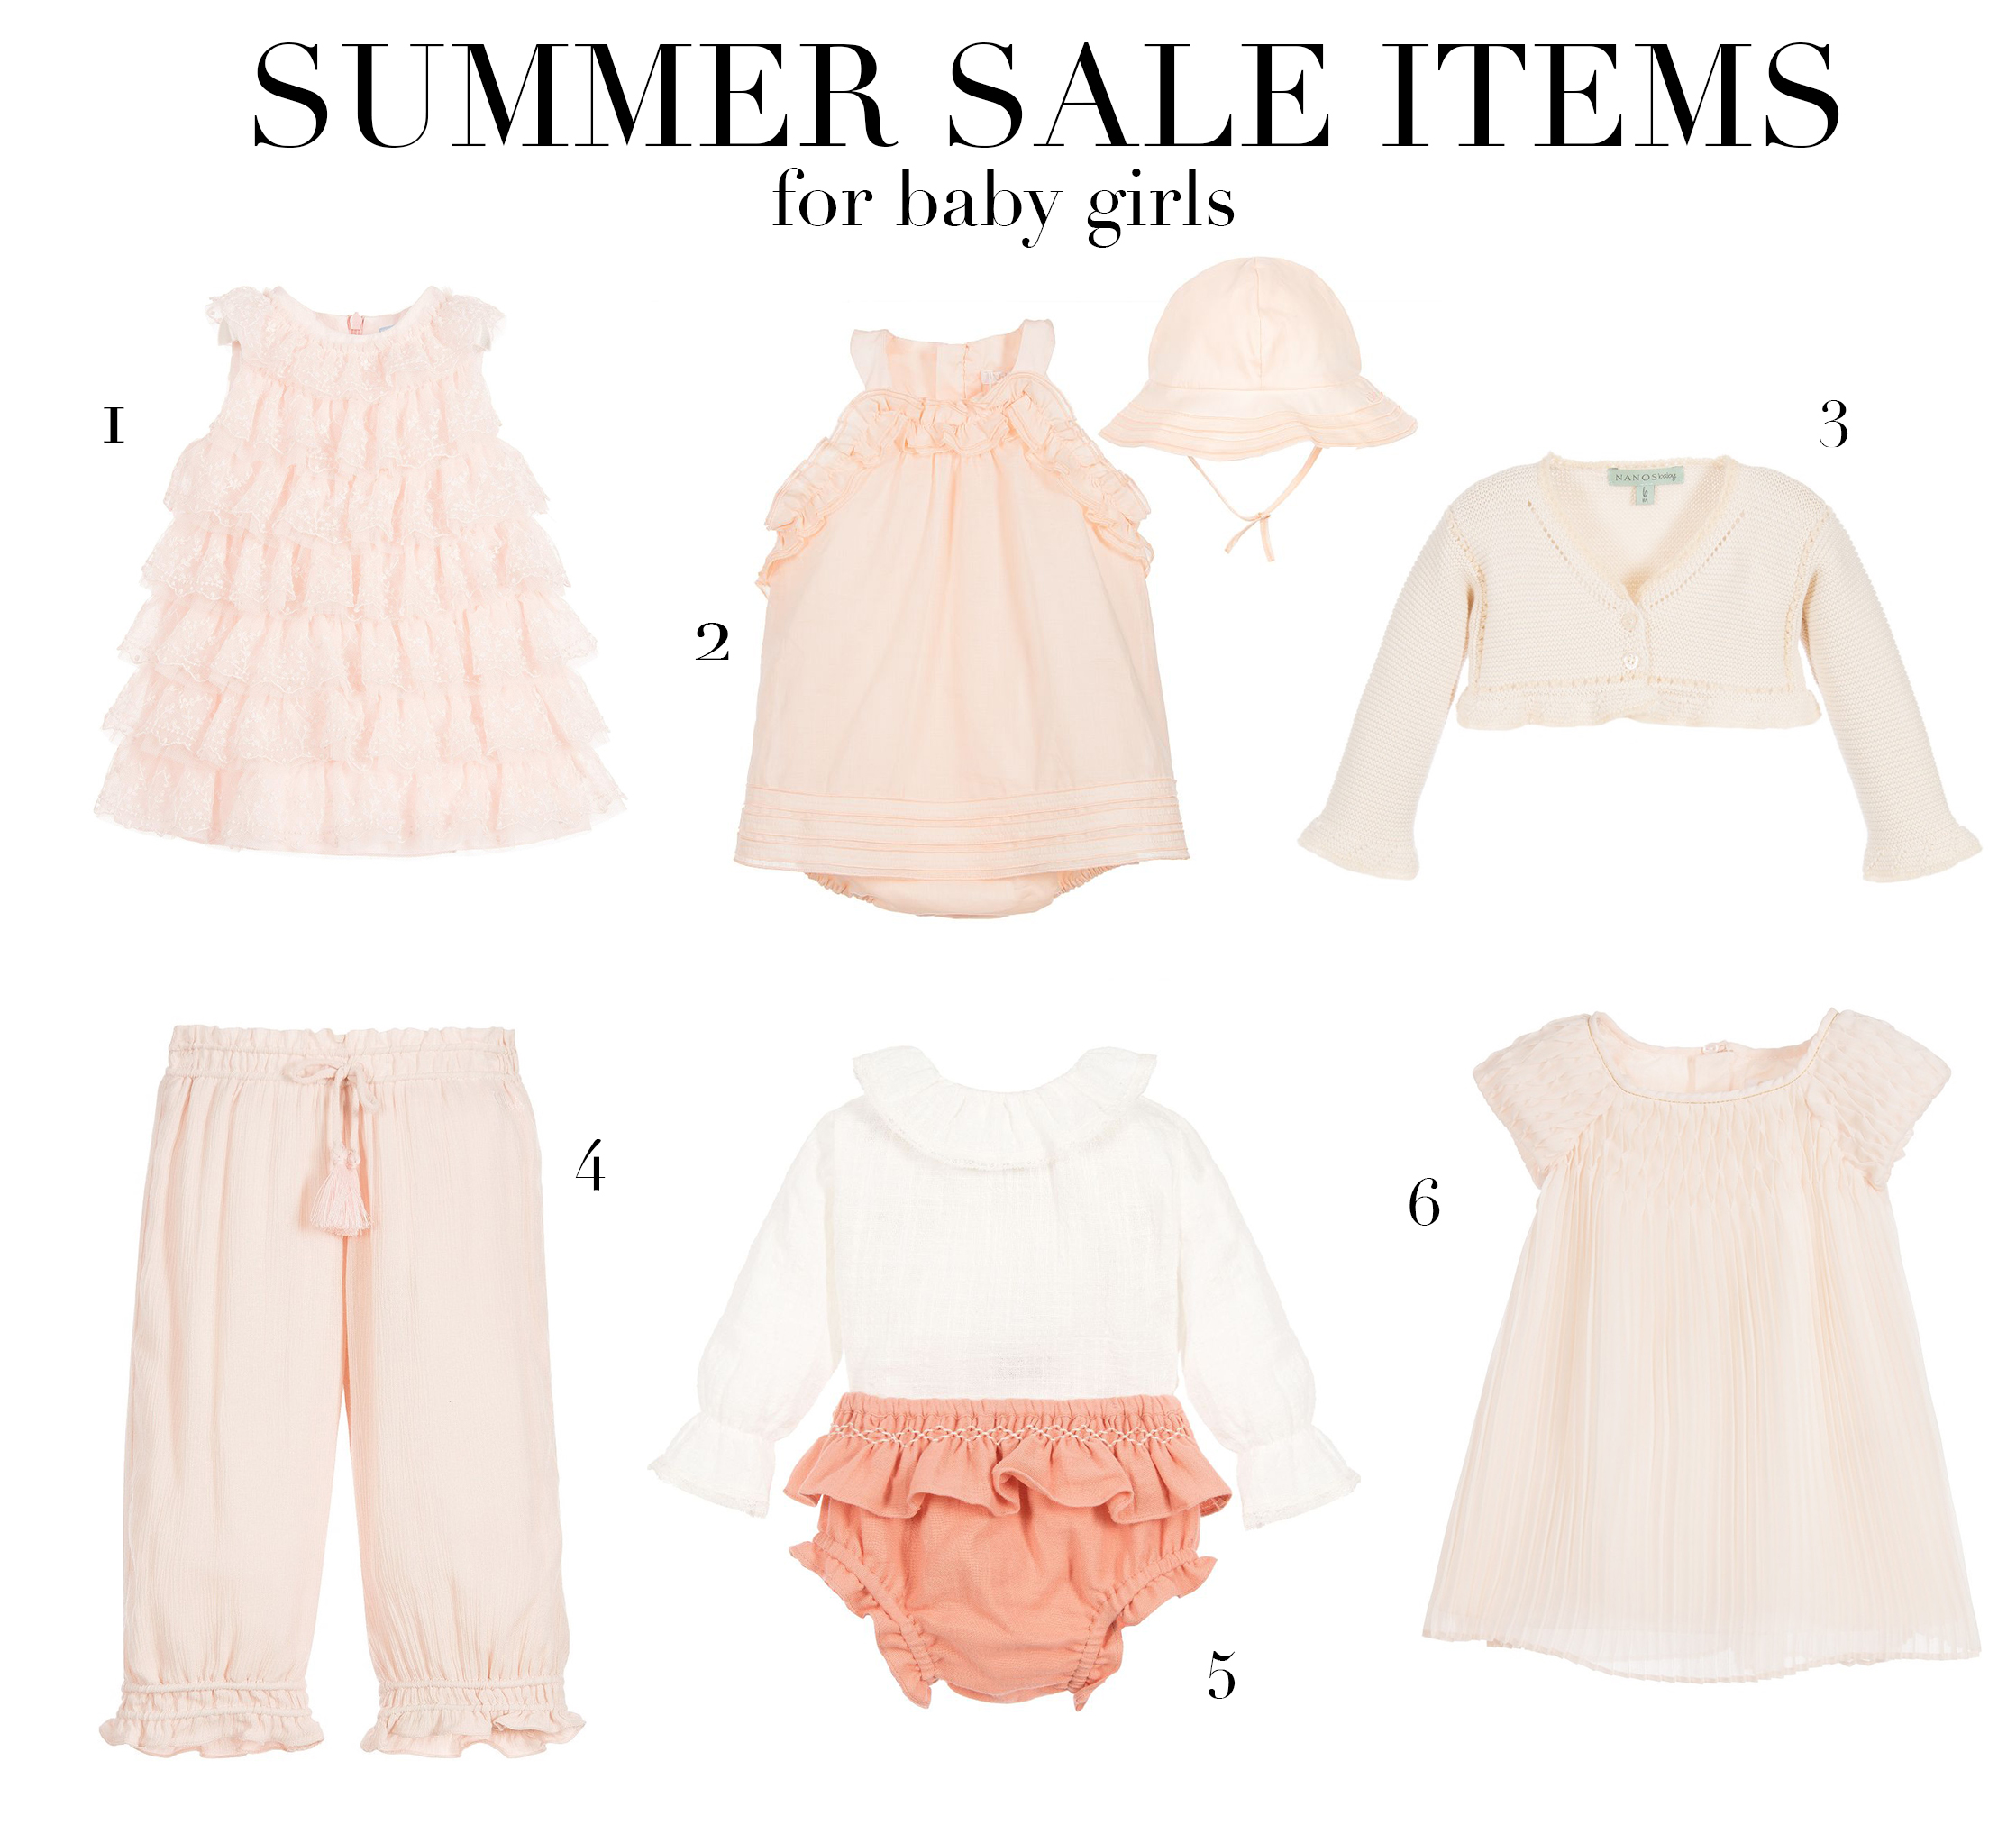 4f6ea49f199c2f Summer sale items for baby girls - Prêt à Pregnant